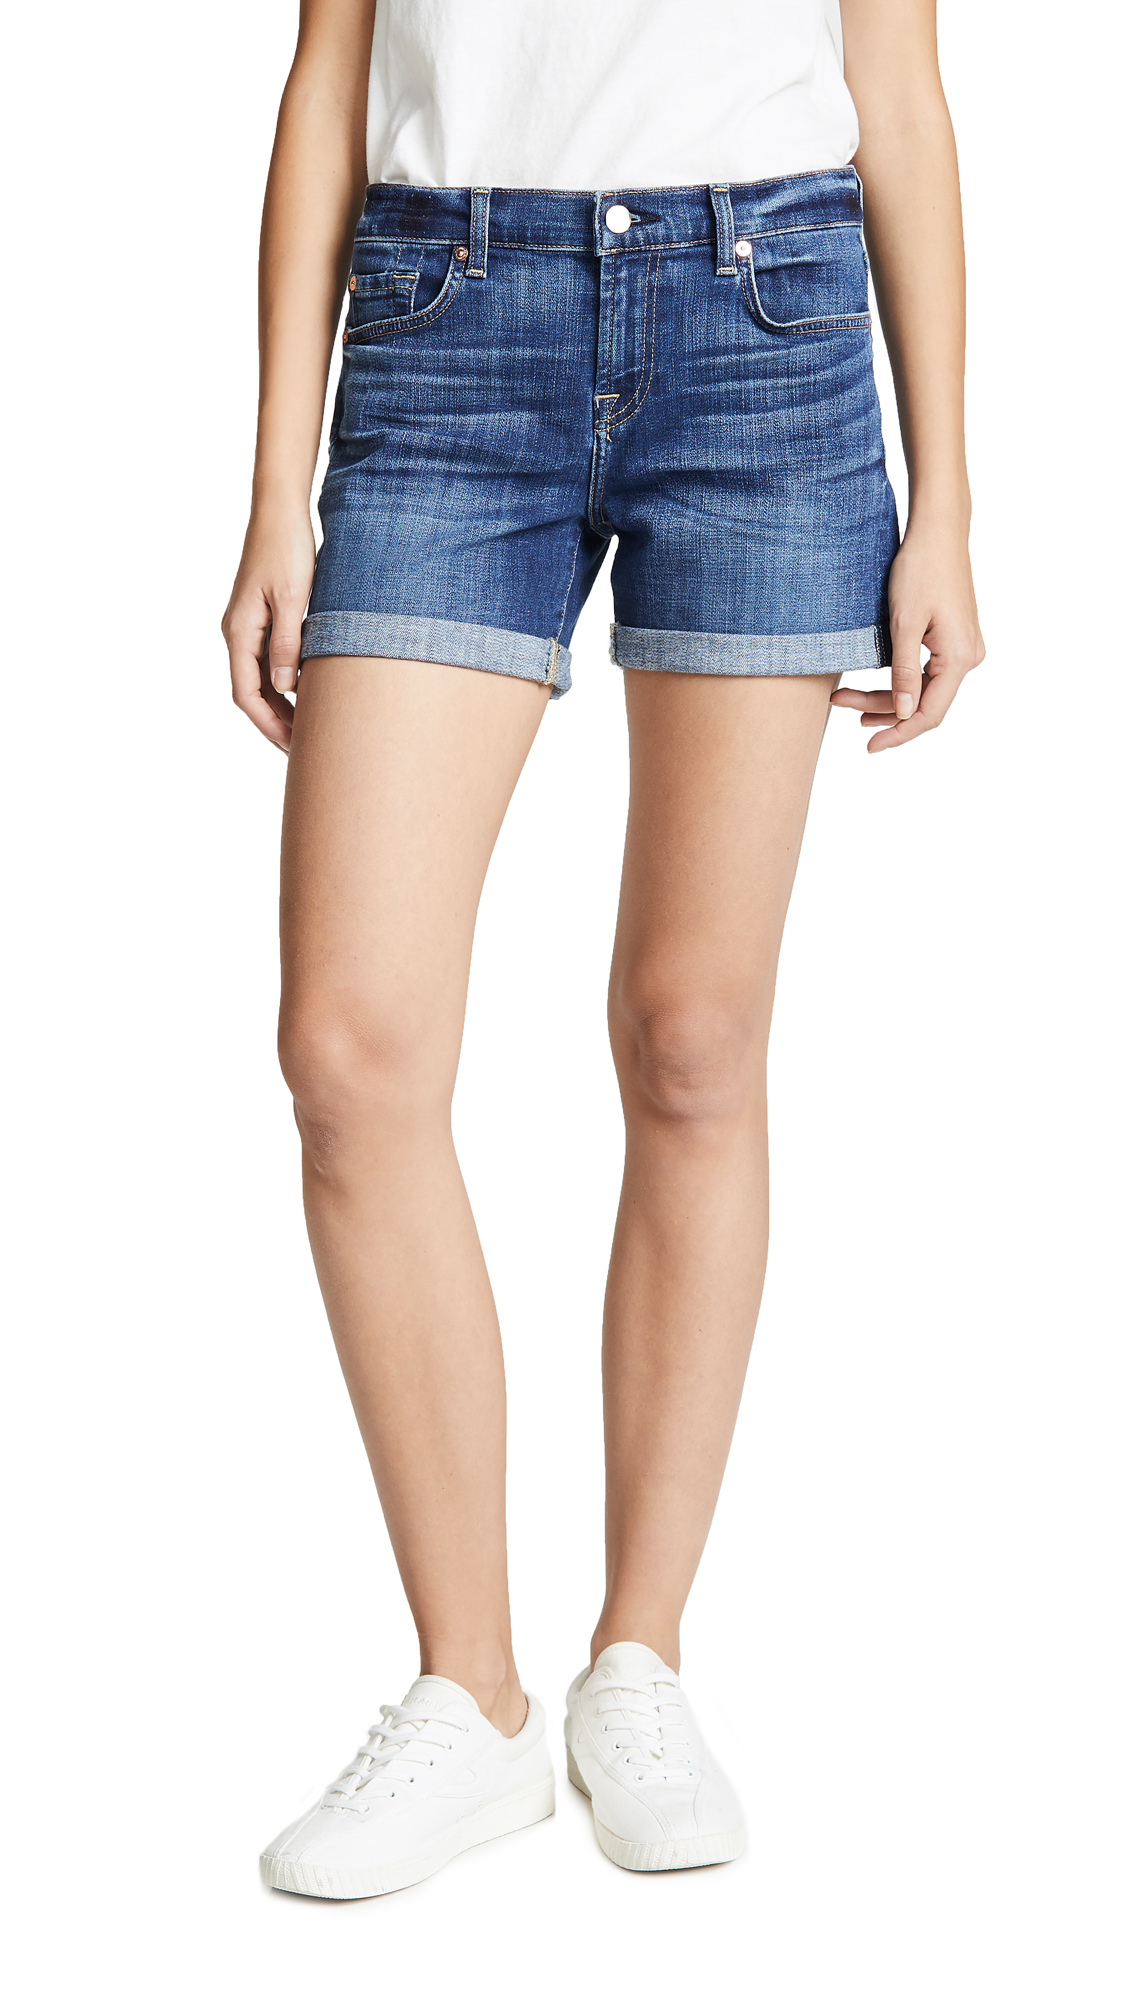 7 For All Mankind Relaxed Mid Roll Shorts - Broken Twill Vanity